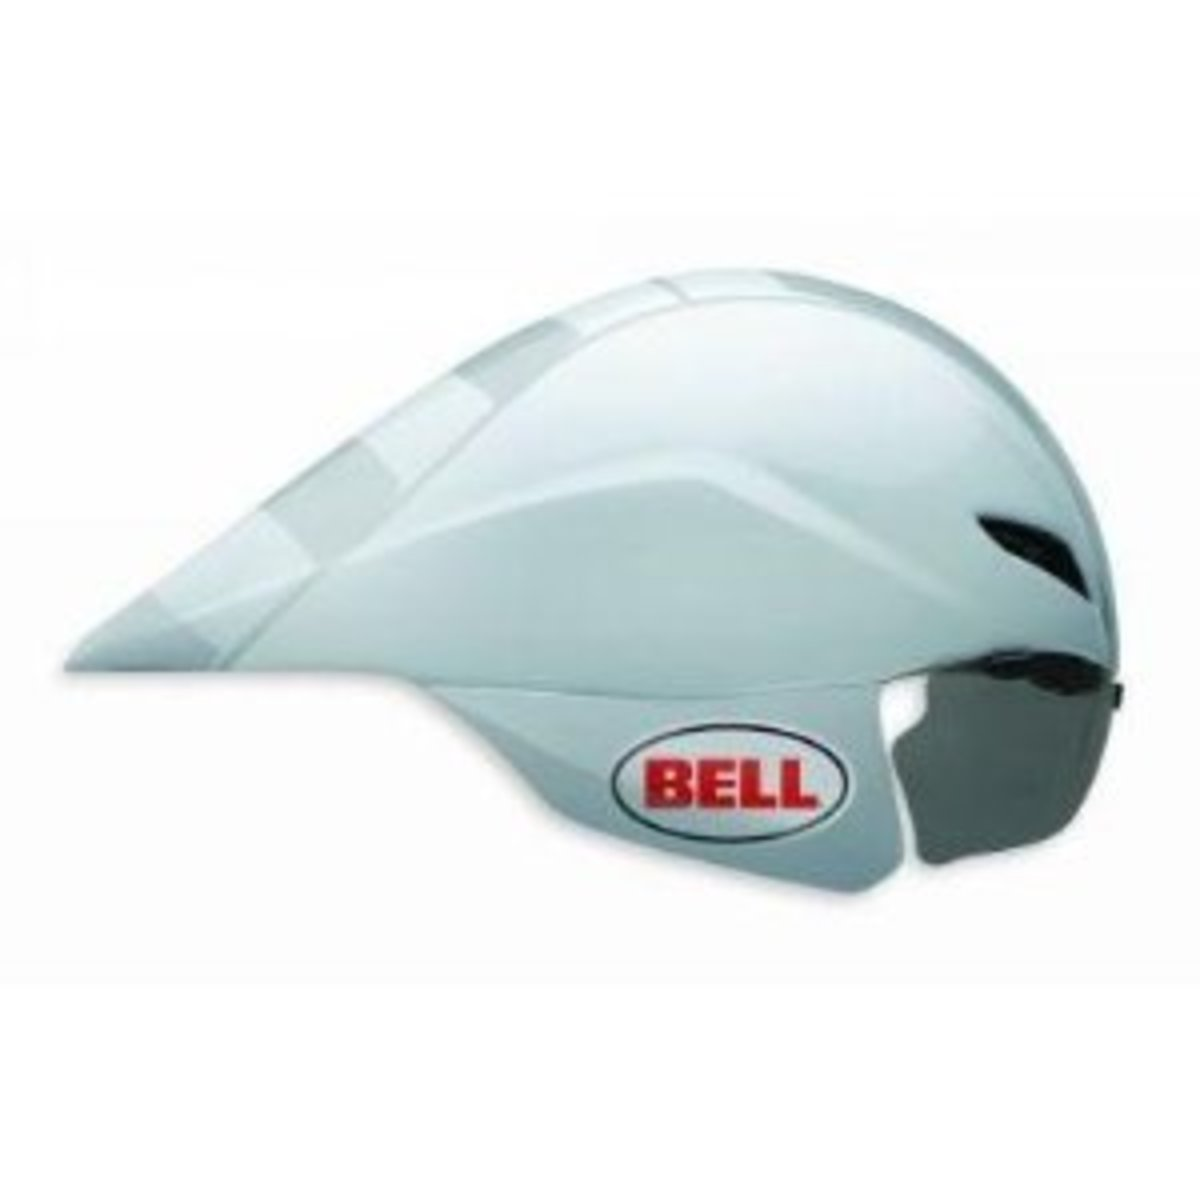 An integrated visor helps with the aerodynamics of the Bell Javelin Aero Helmet